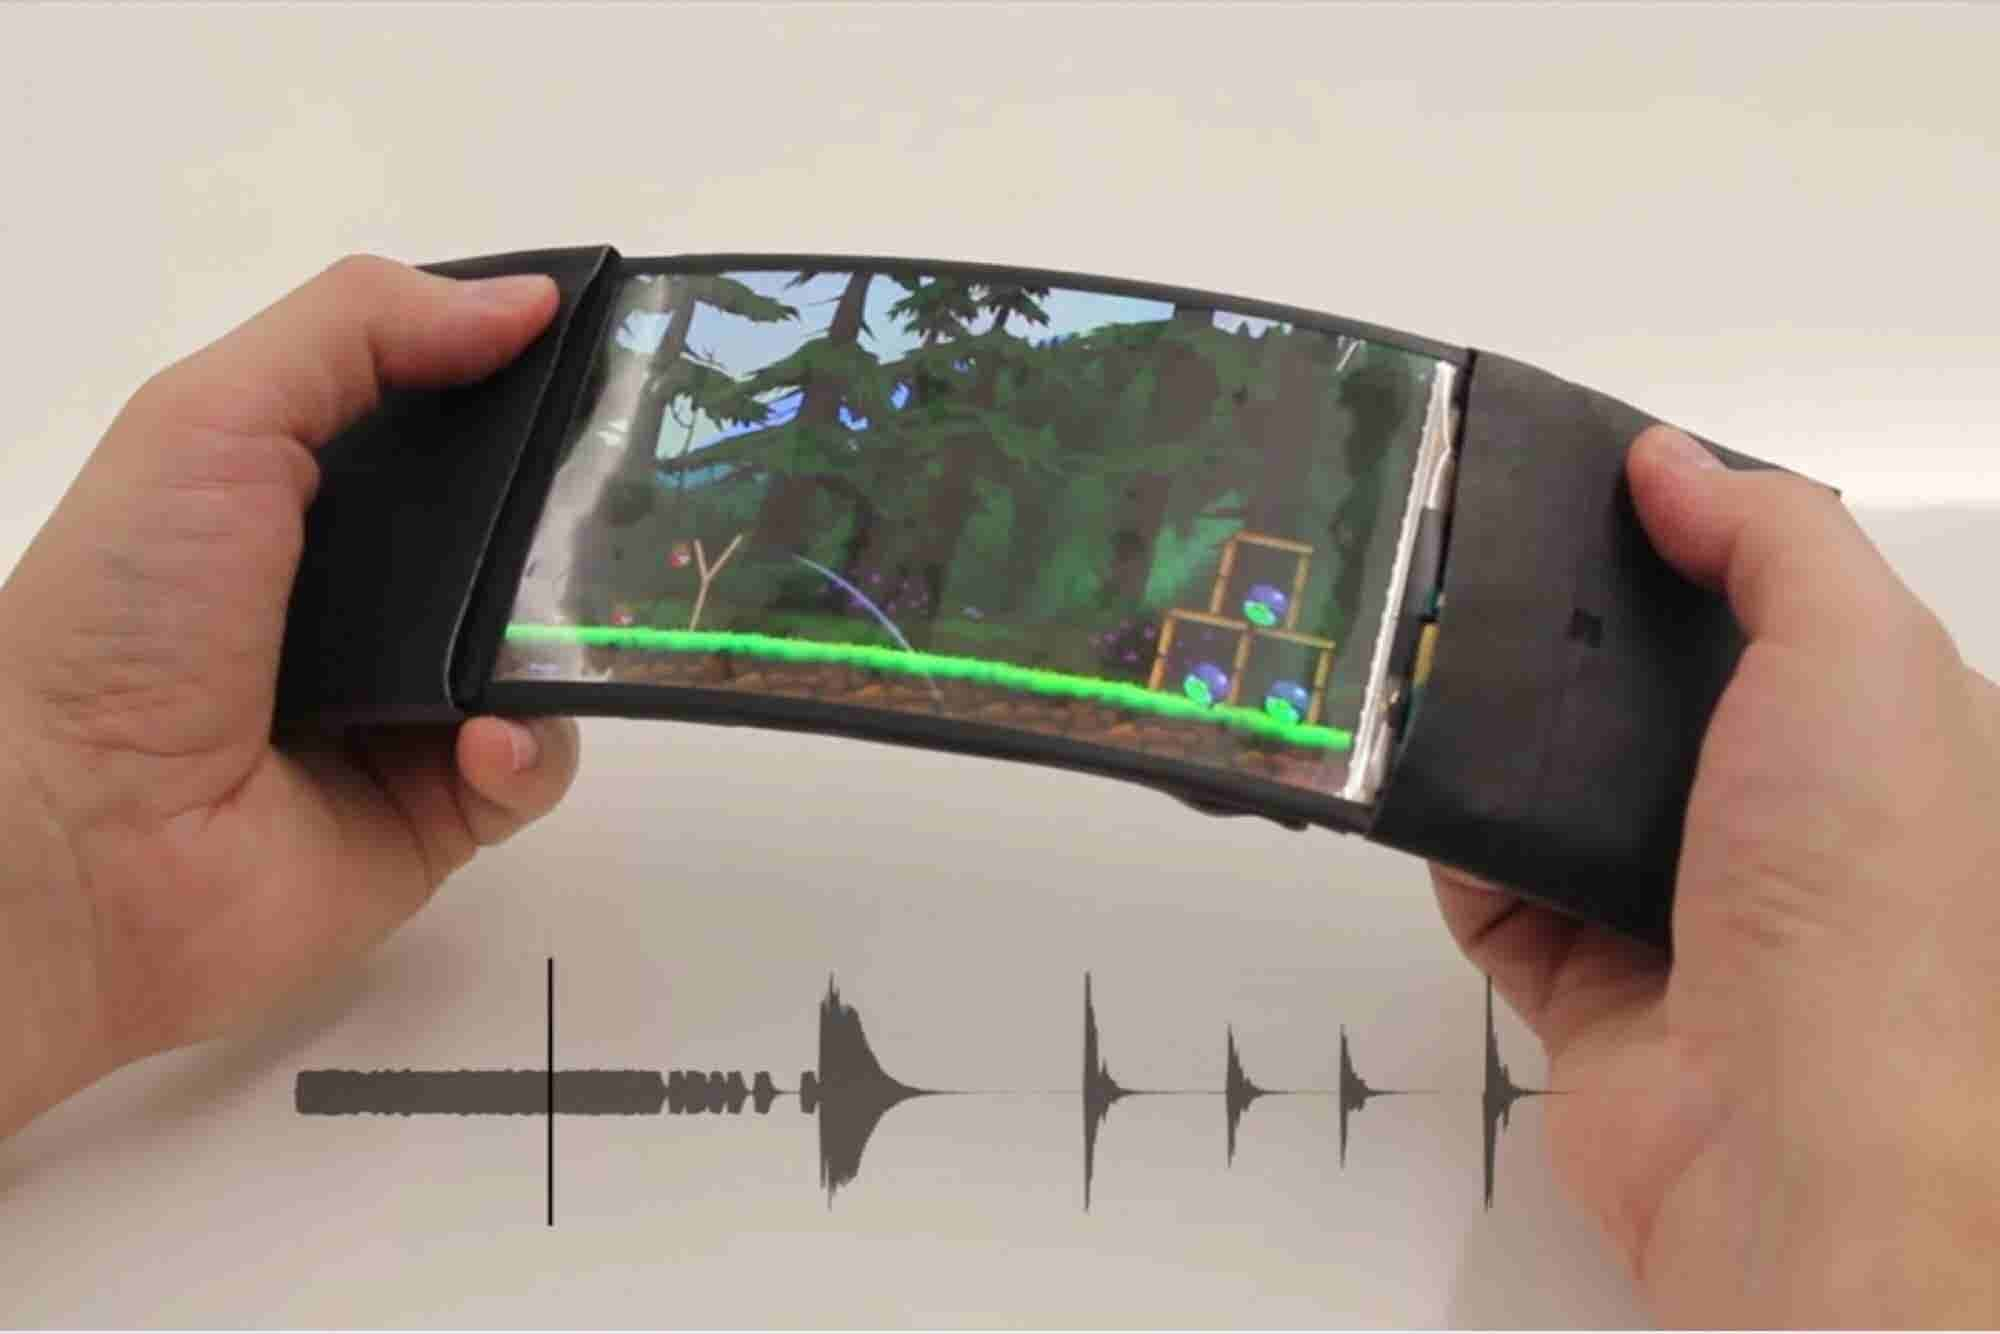 Flexible Smartphones May Be Coming Sooner Than You Think